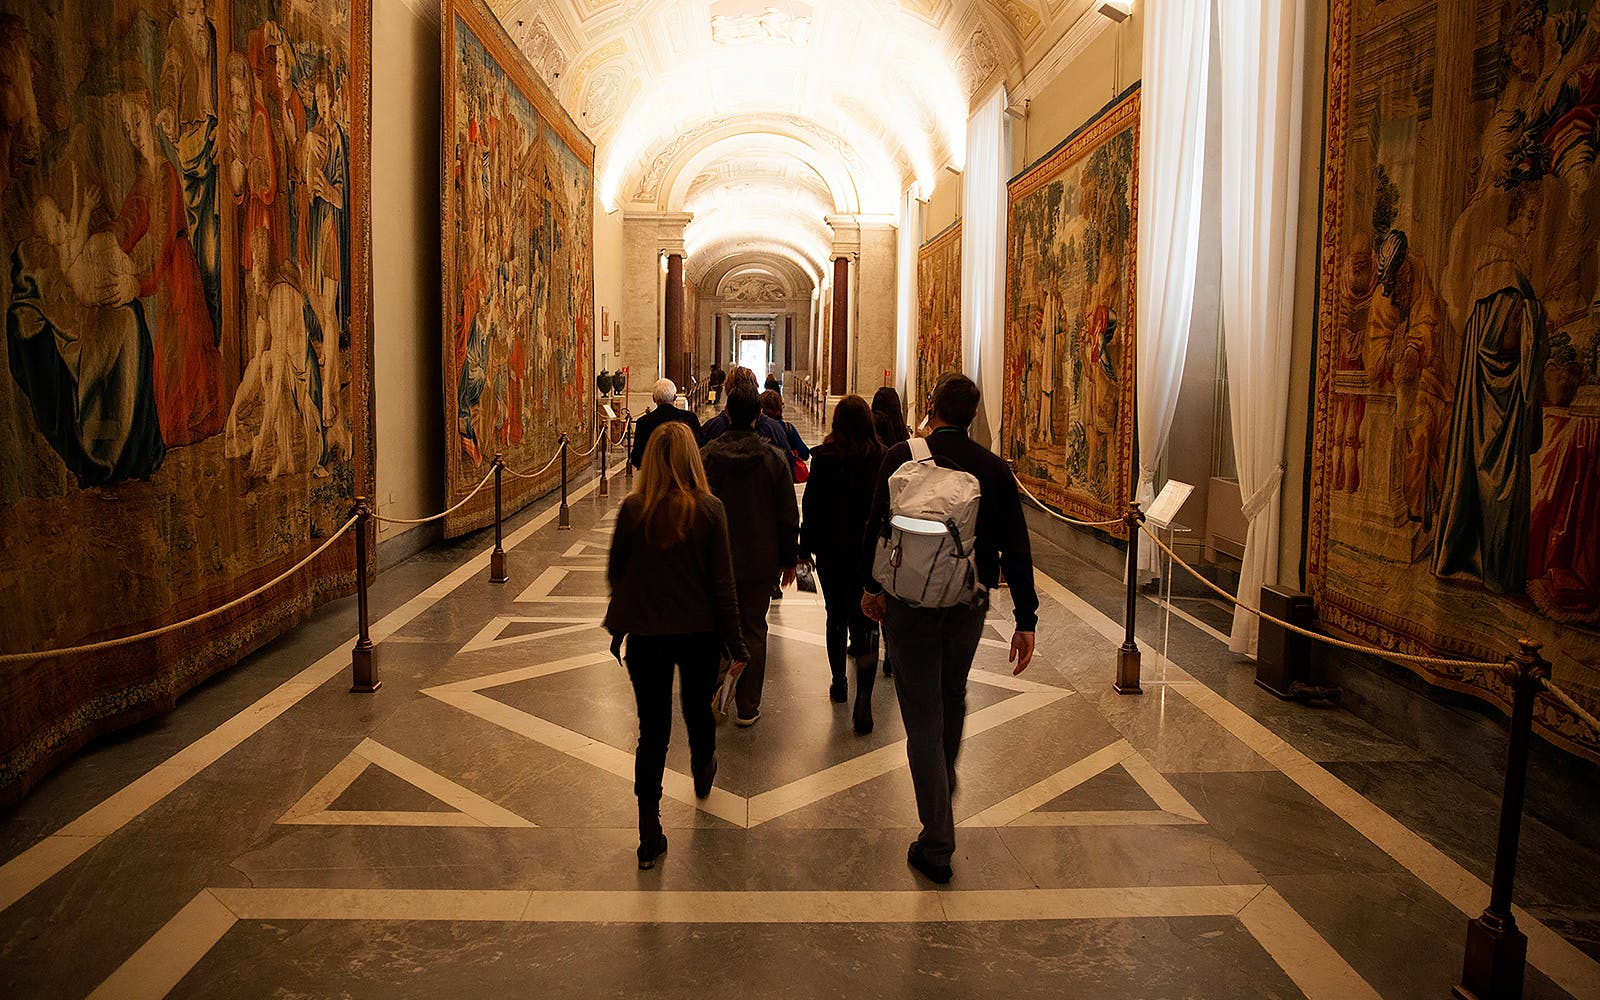 guided tour of vatican museums, sistine chapel & st. peter's basilica-2